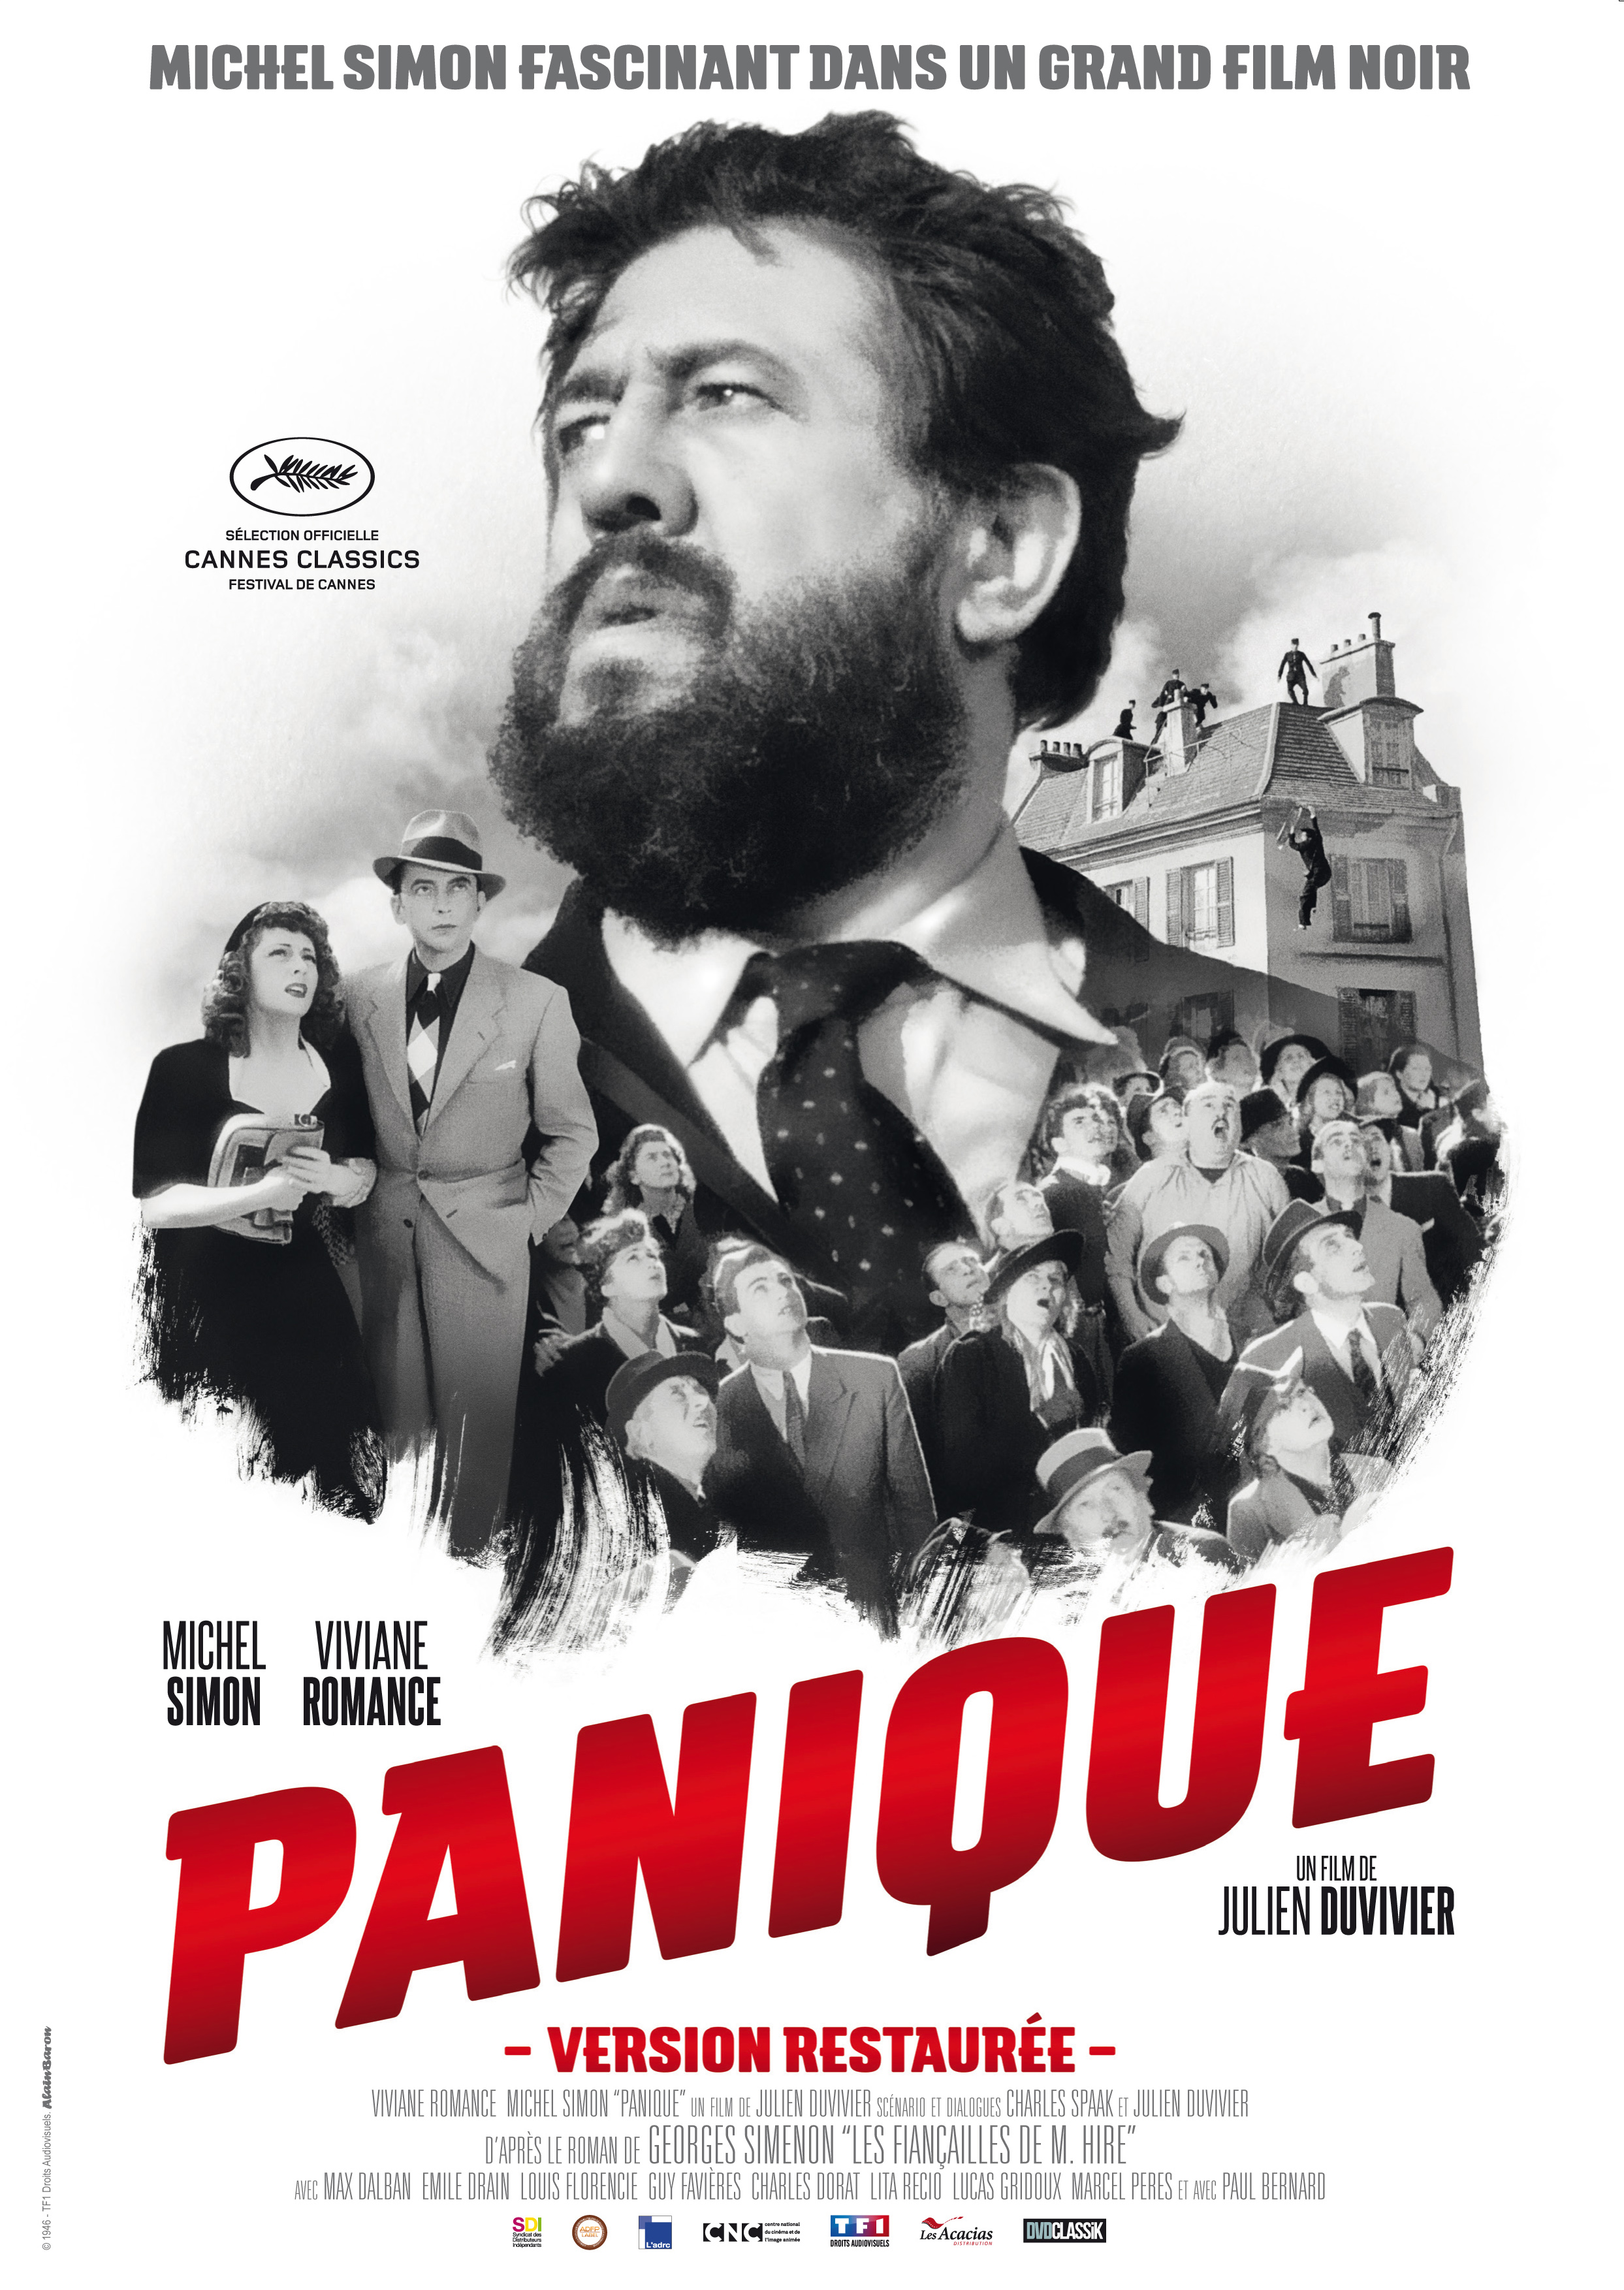 http://www.festival-playitagain.com/film/panique/